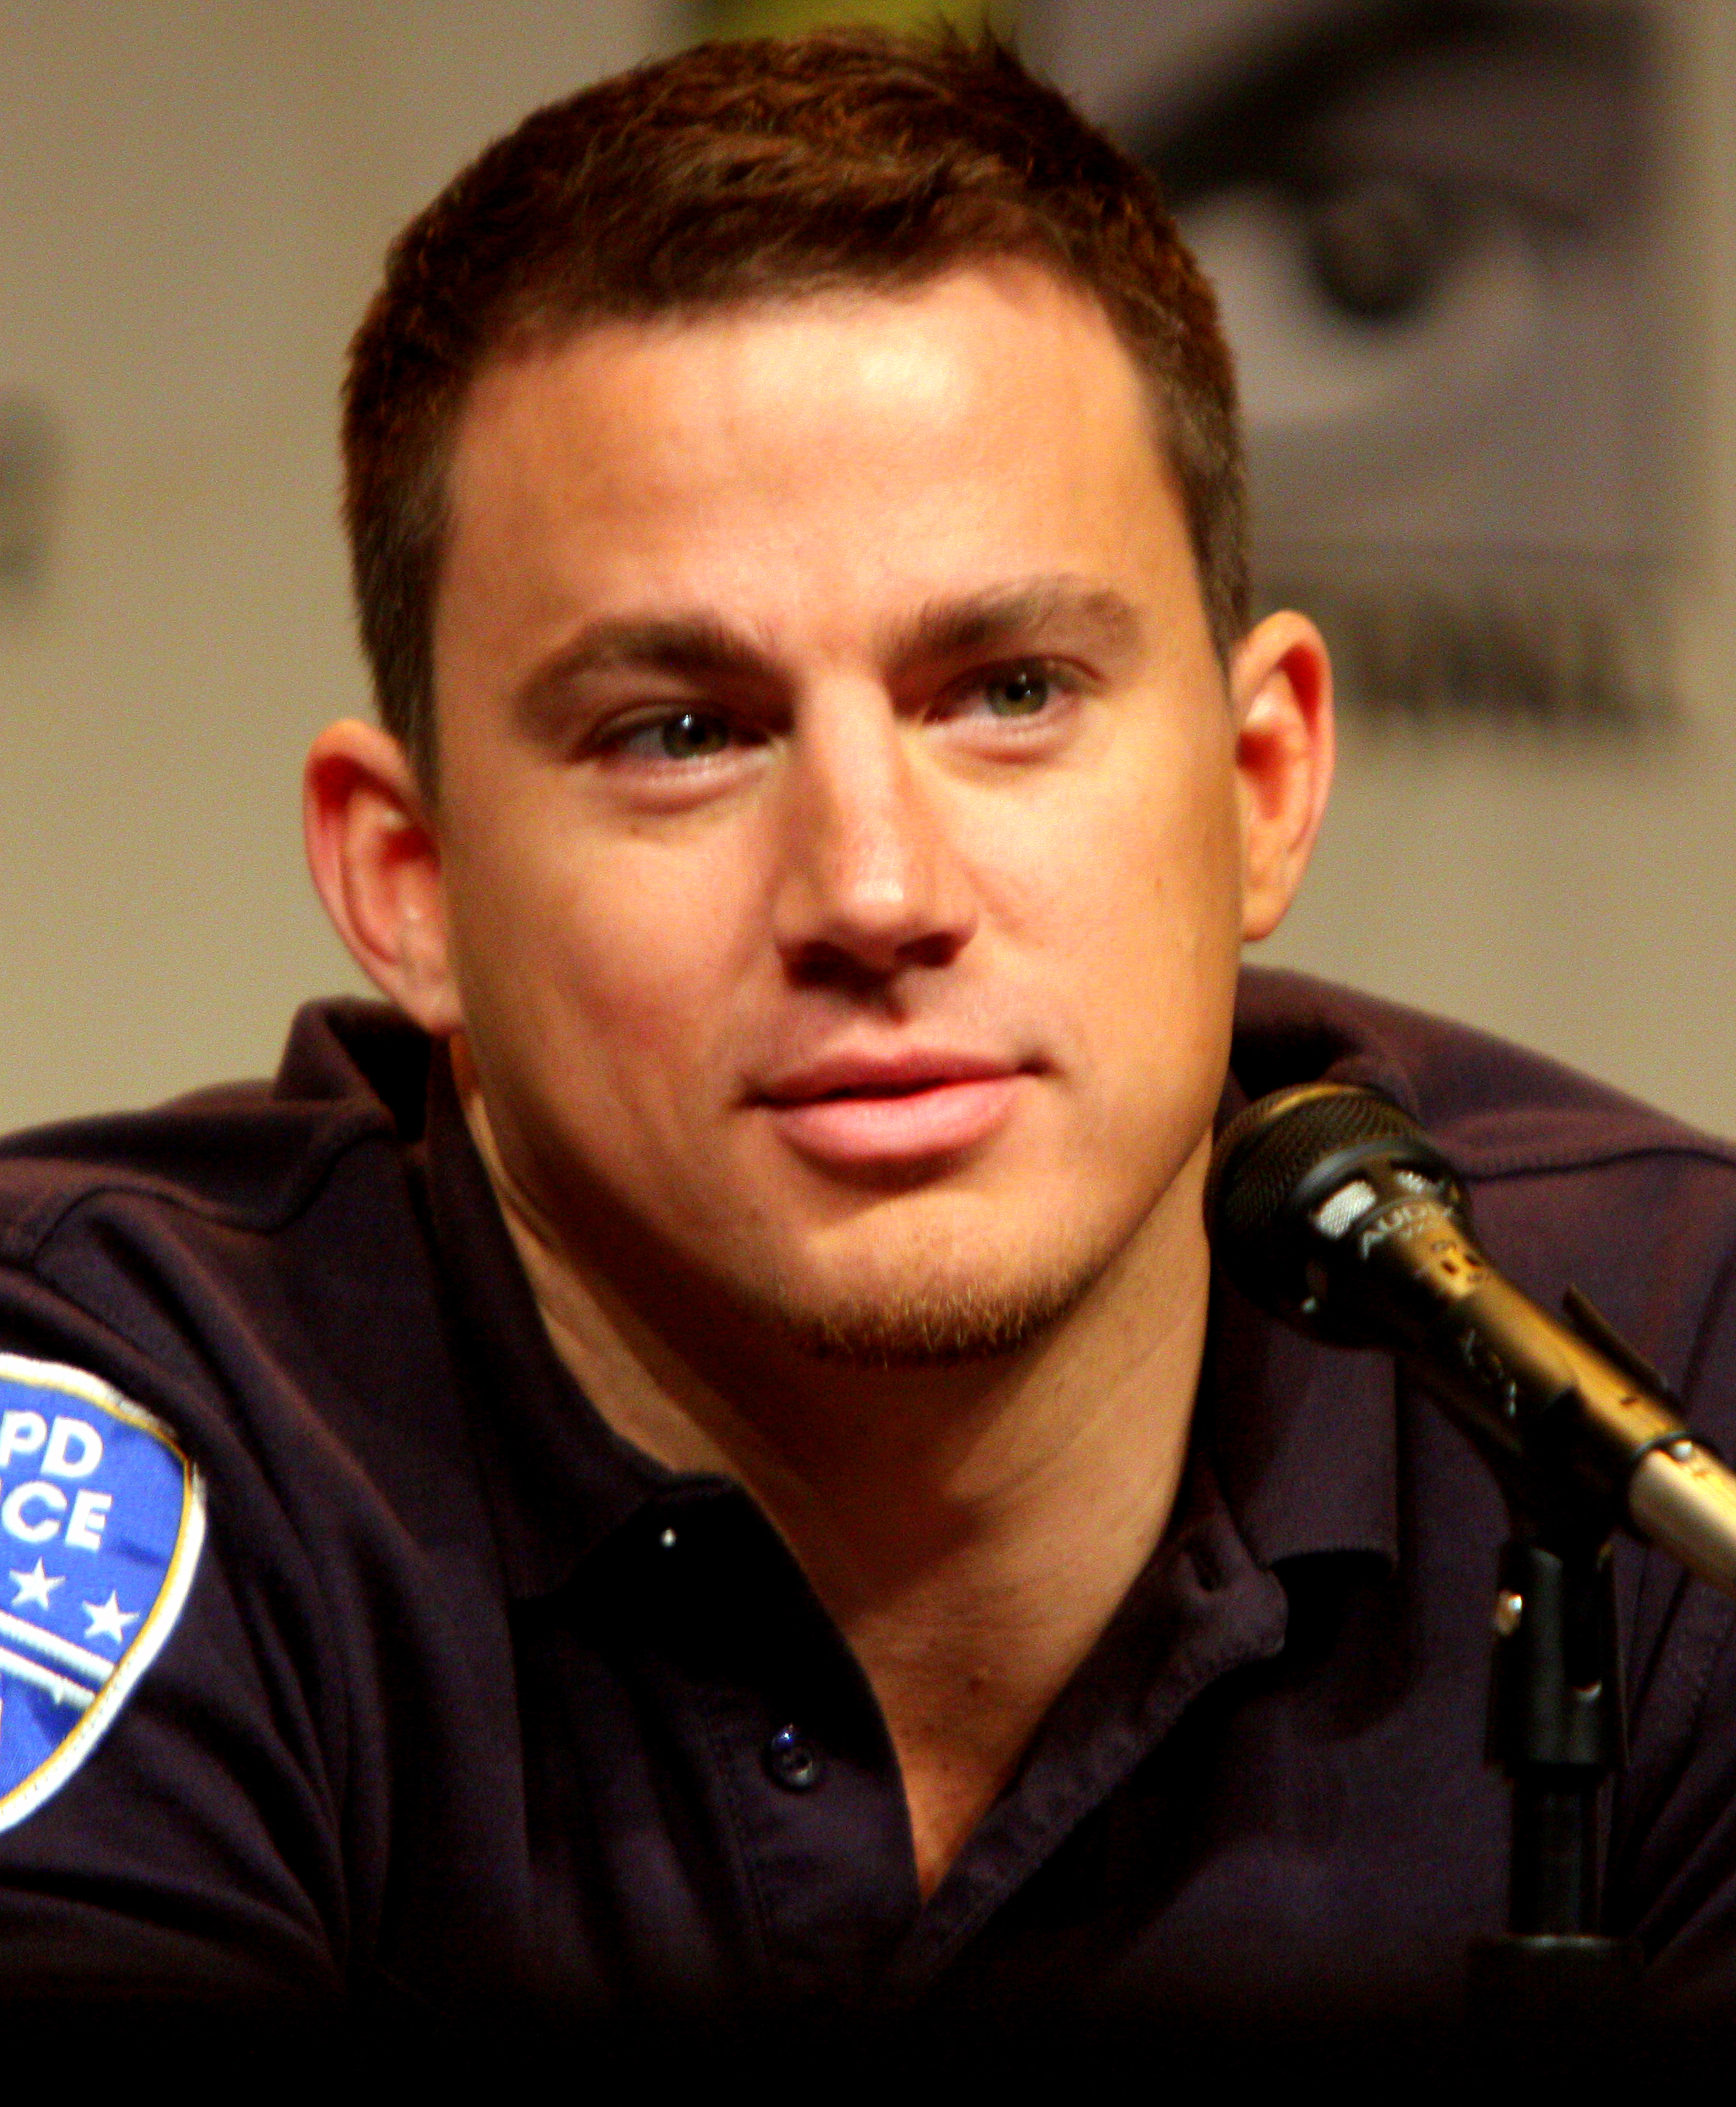 File:Channing Tatum WonderCon 2012.jpg - Wikimedia Commons Channing Tatum